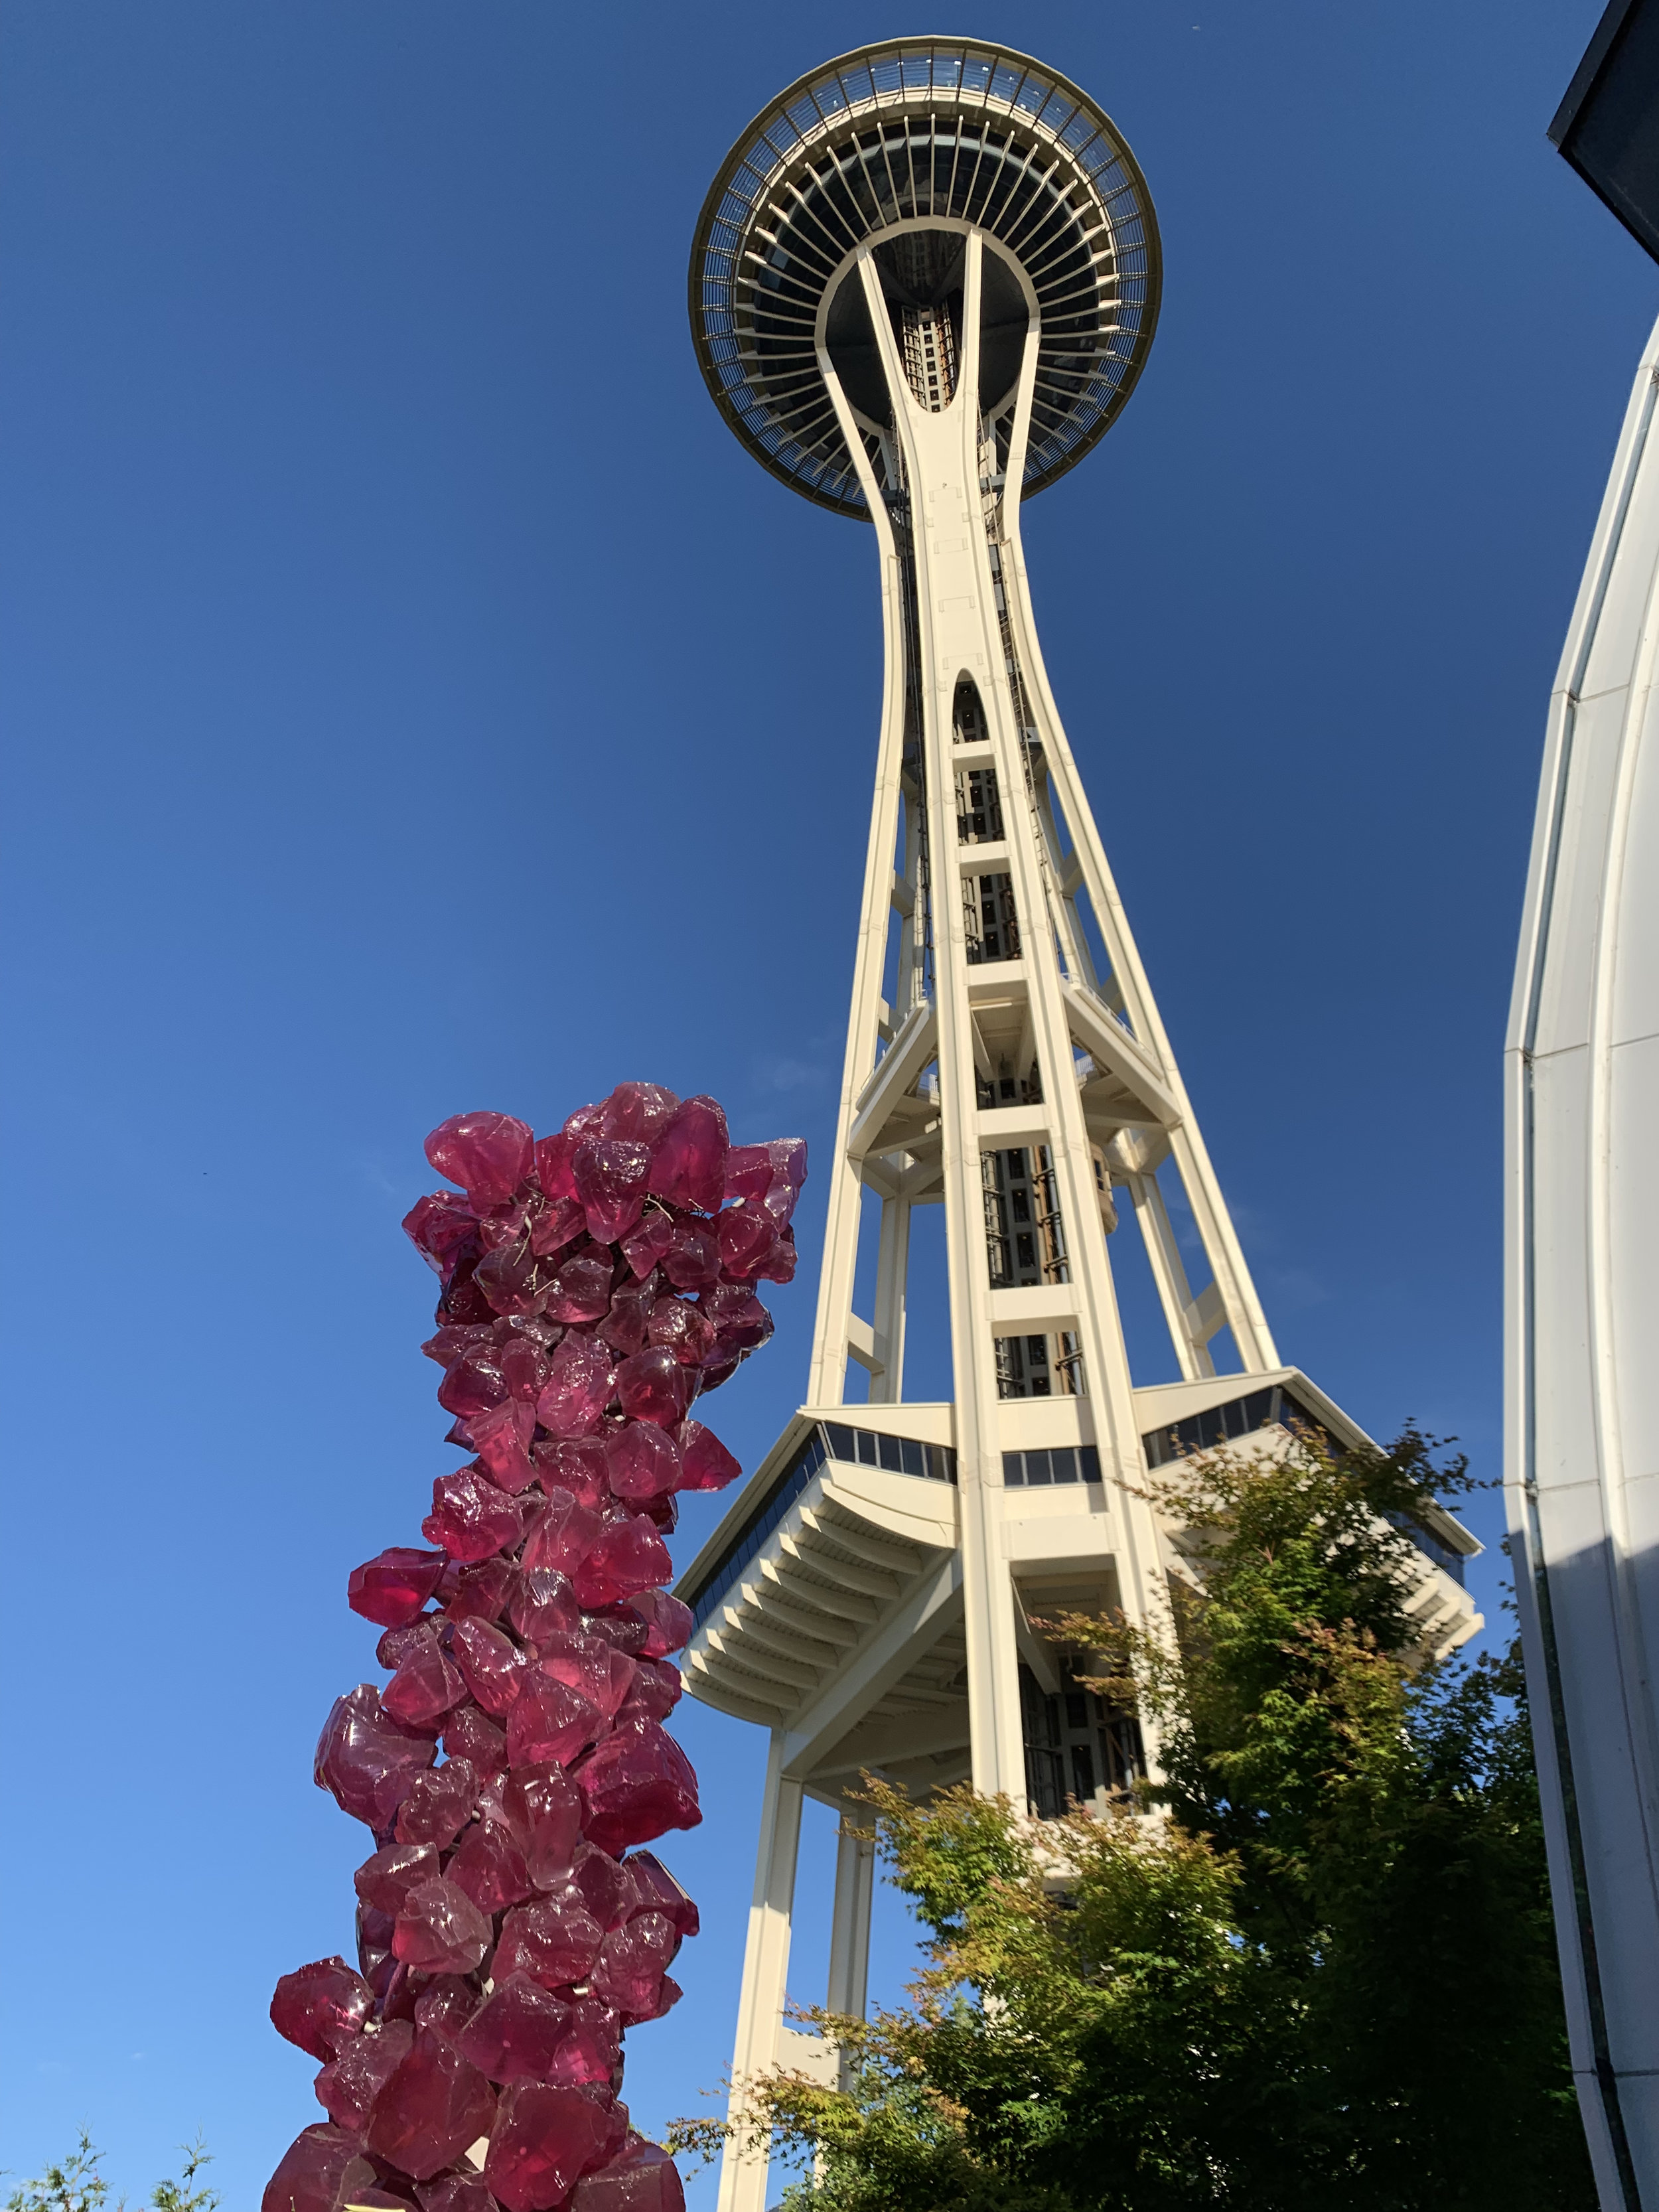 One of the garden sculptures up next to the Space Needle